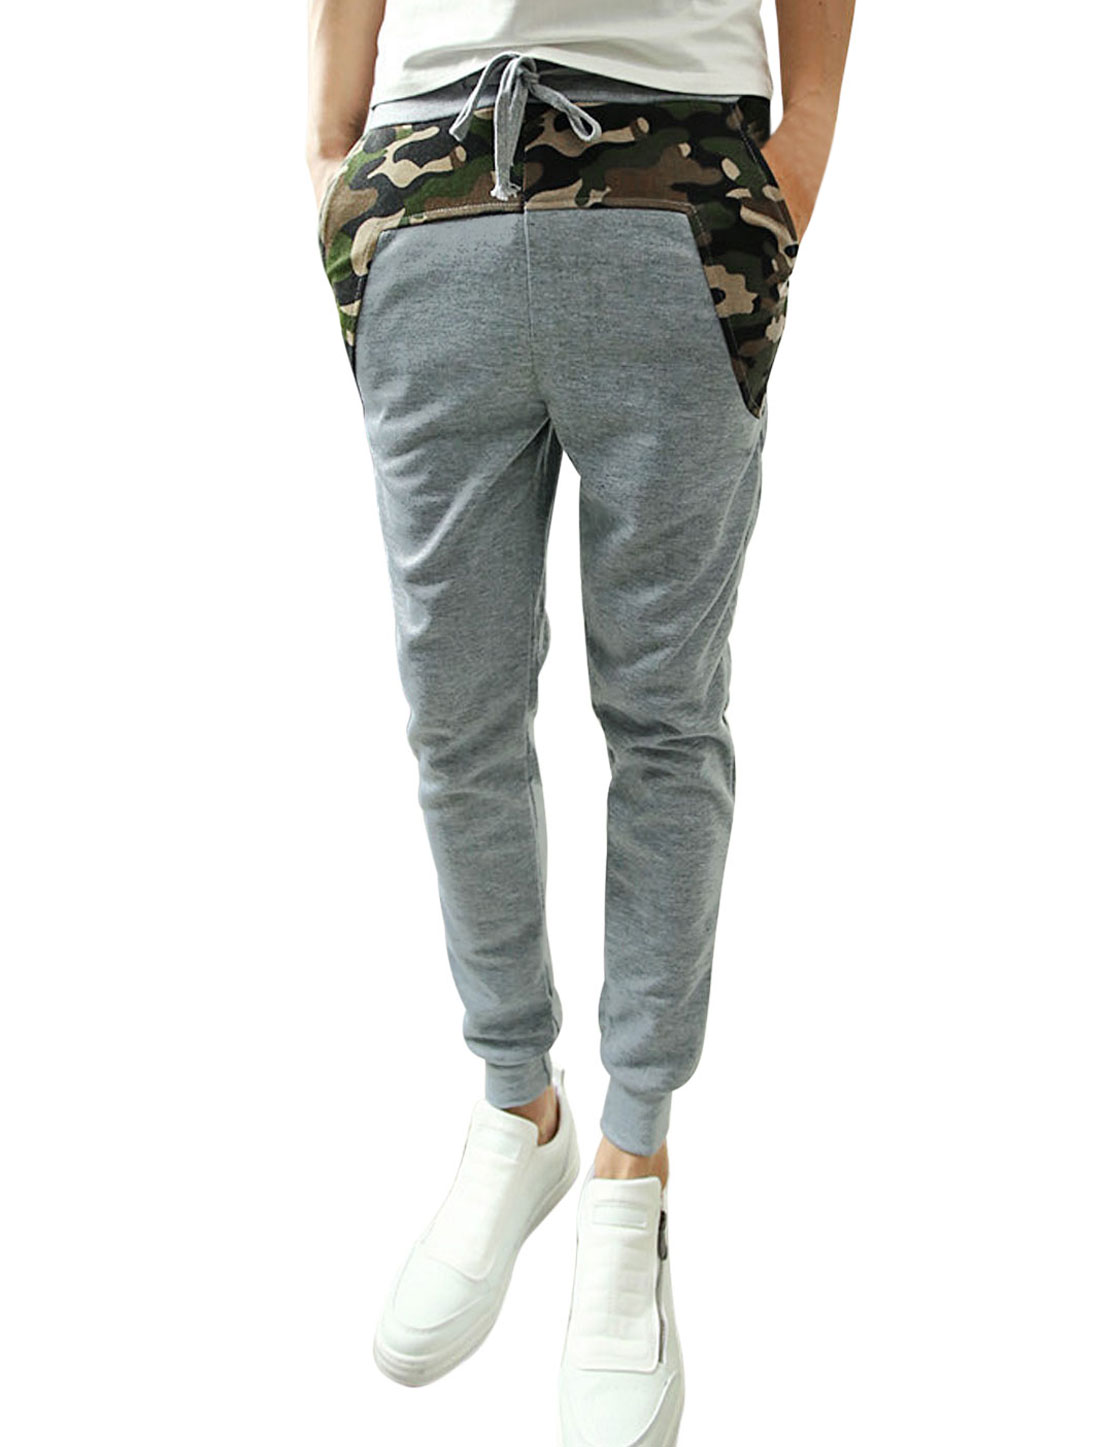 Men Ribbed Cuffs Camouflage Pattern Patched Design Casual Pants Light Gray W30